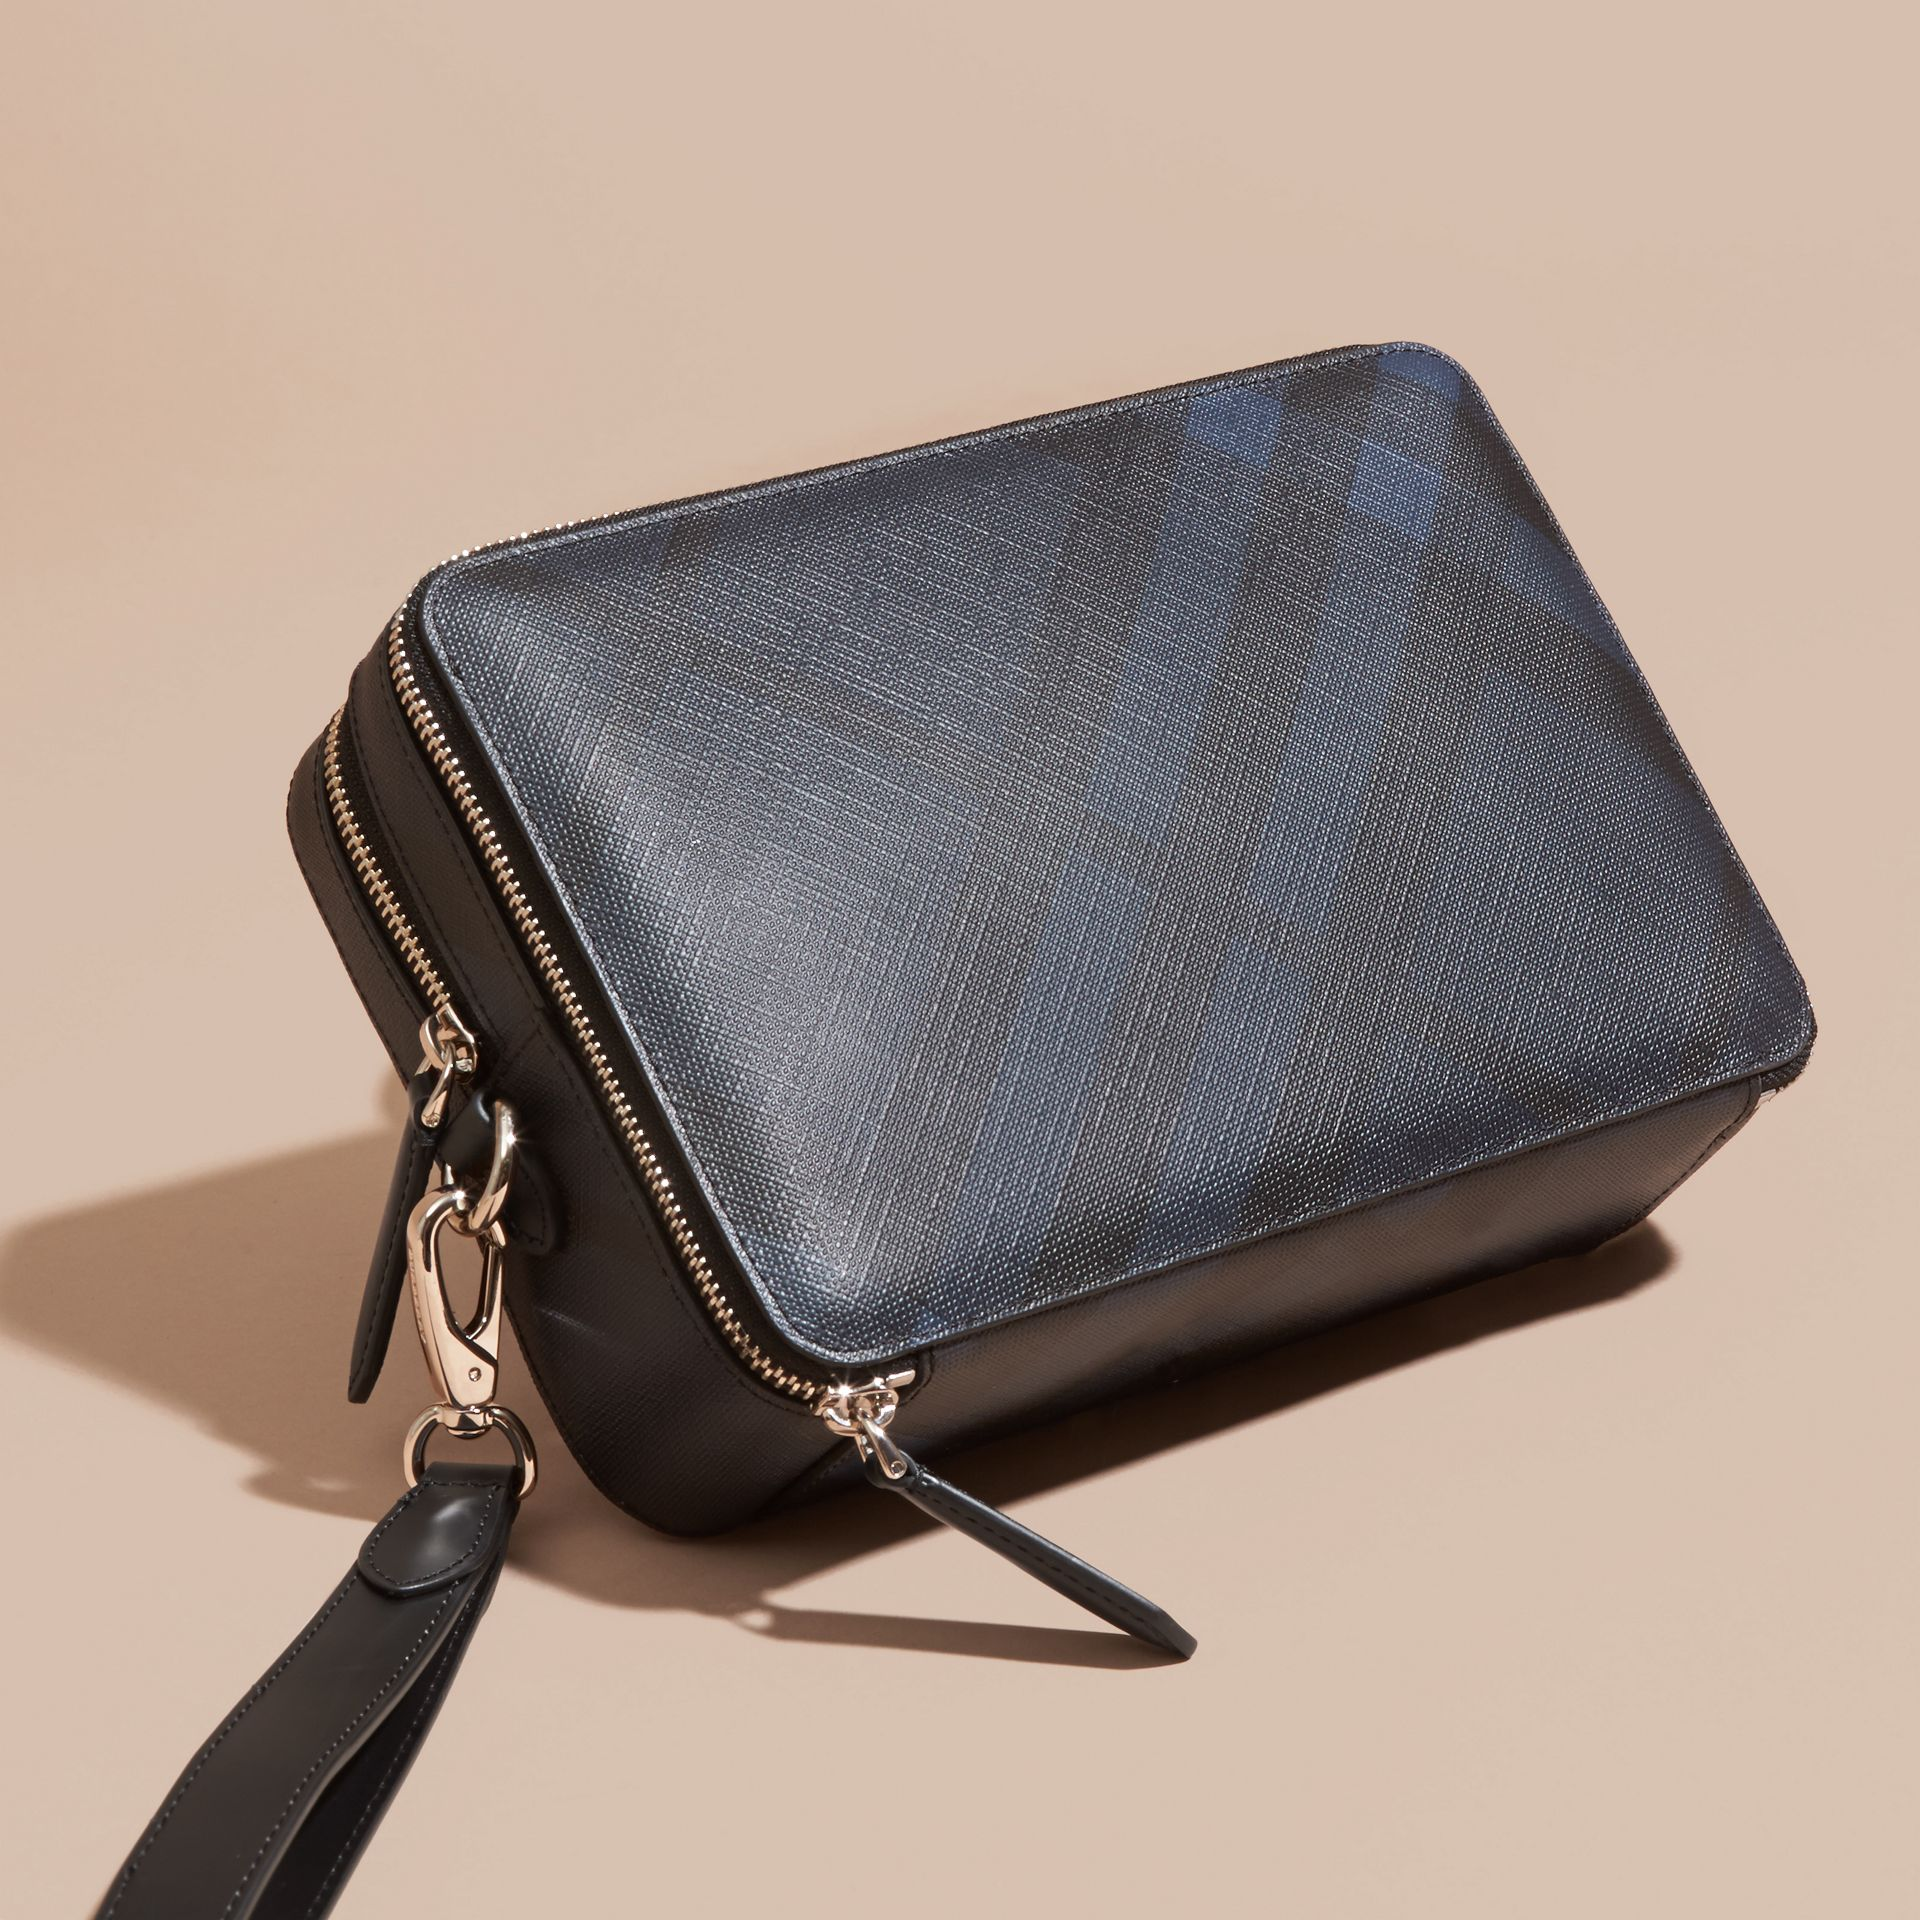 Leather-trimmed London Check Pouch Navy/black - gallery image 5